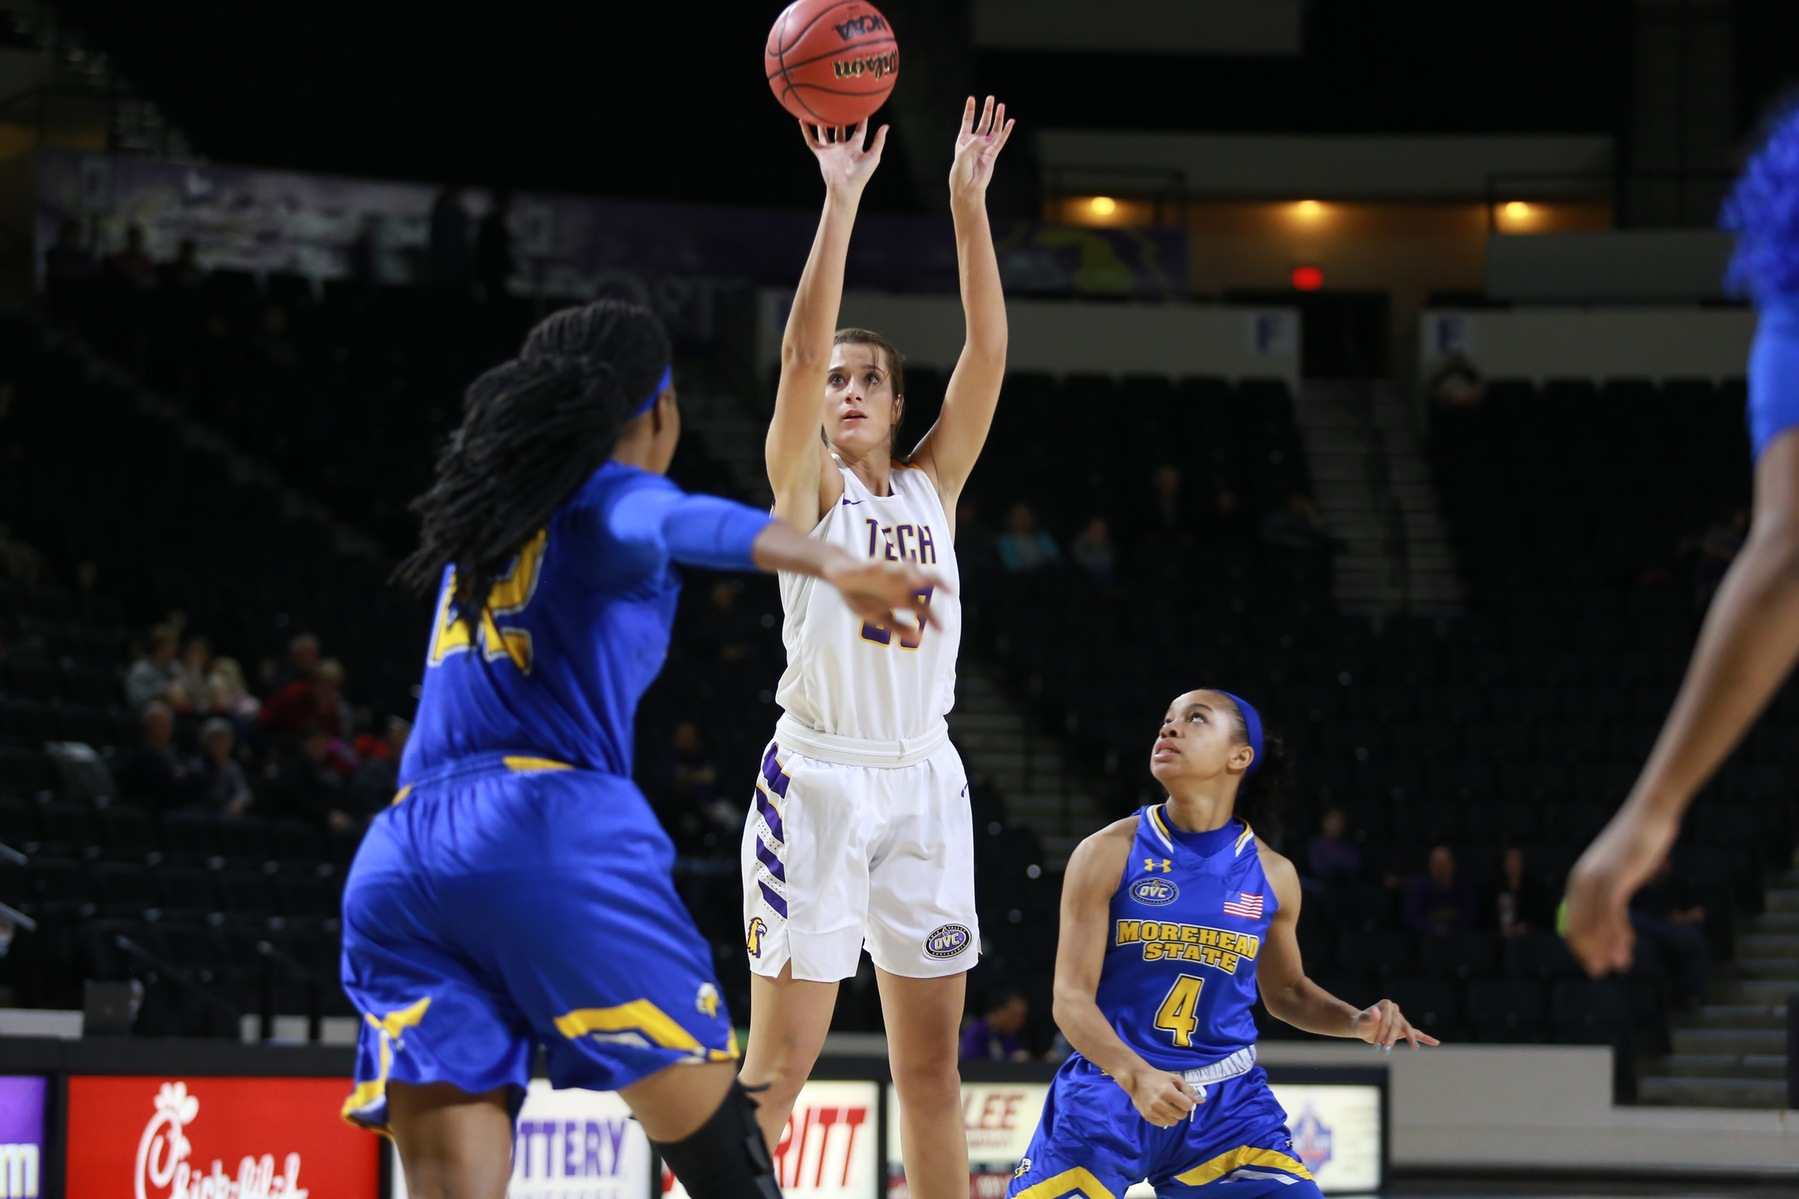 Tech shows promise in first OVC game versus Morehead State